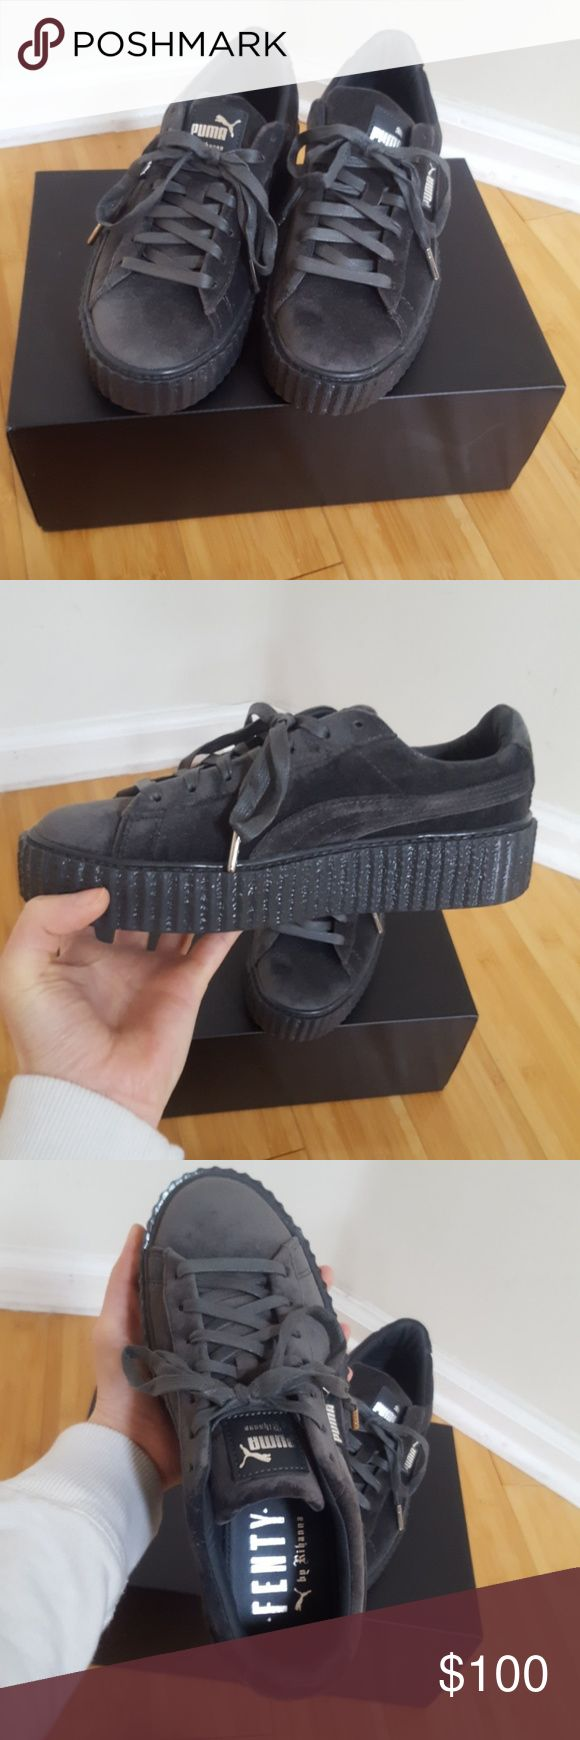 Puma Fenty Grey Sneakers New Fenty velvet sneakers! Comes with box, no bag. Was on display but there are no visible marks or dents! Size 7.5   PRICE is FIRM. Puma Shoes Sneakers